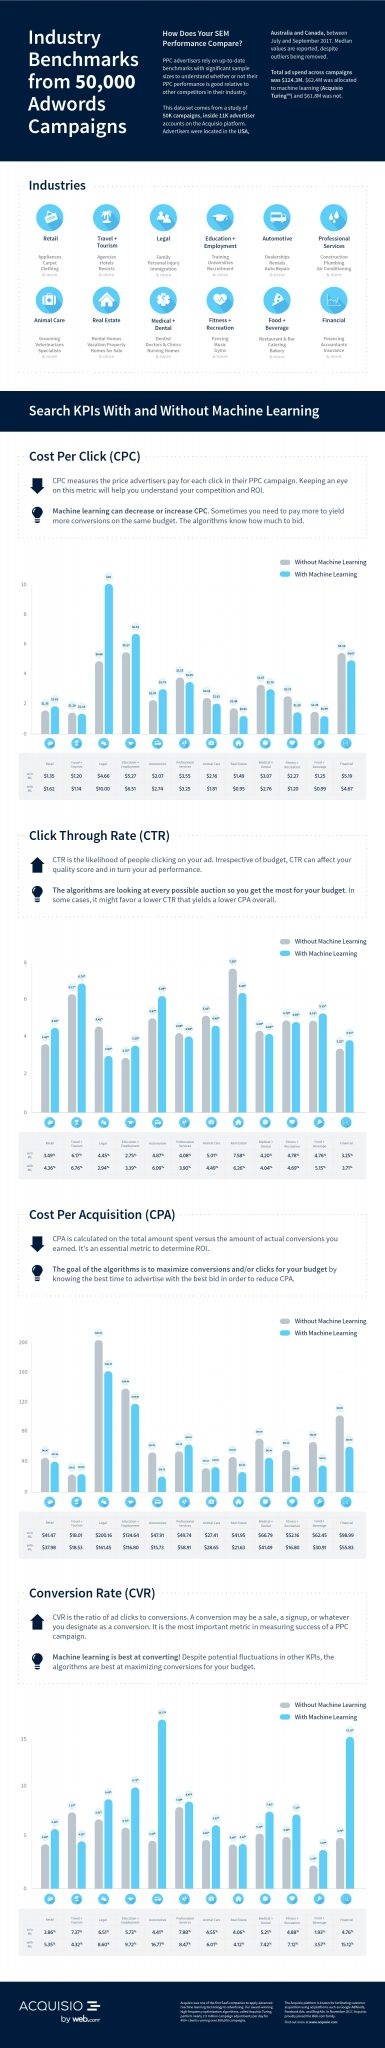 ppc, Pay-Per-Click (PPC) Industry Stats